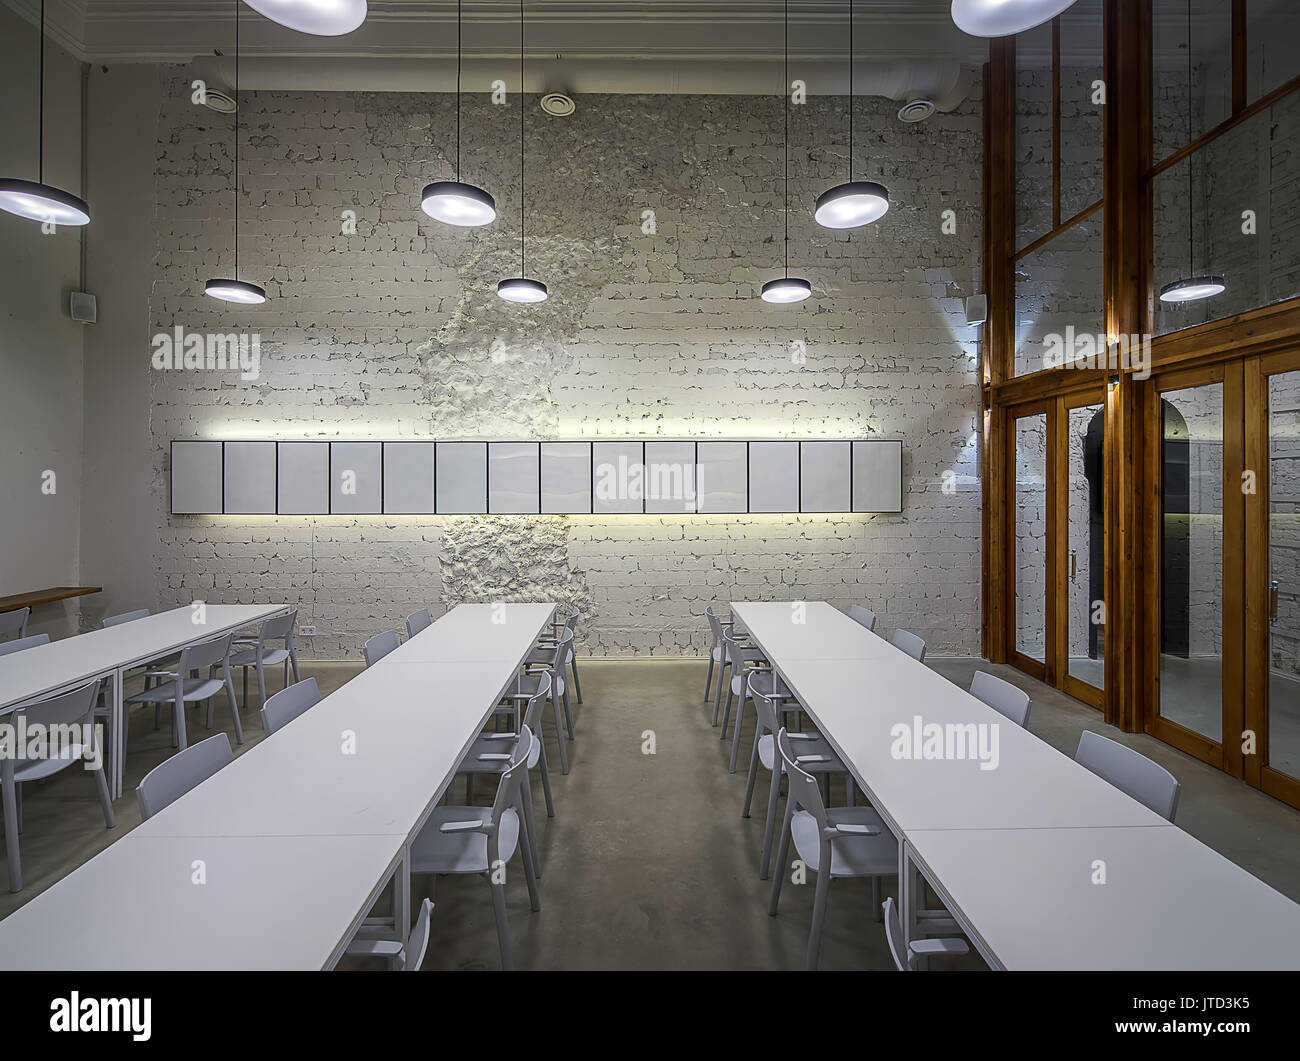 luminous hall in the cafe with shabby light walls and gray floor stock photo 152722953 alamy. Black Bedroom Furniture Sets. Home Design Ideas